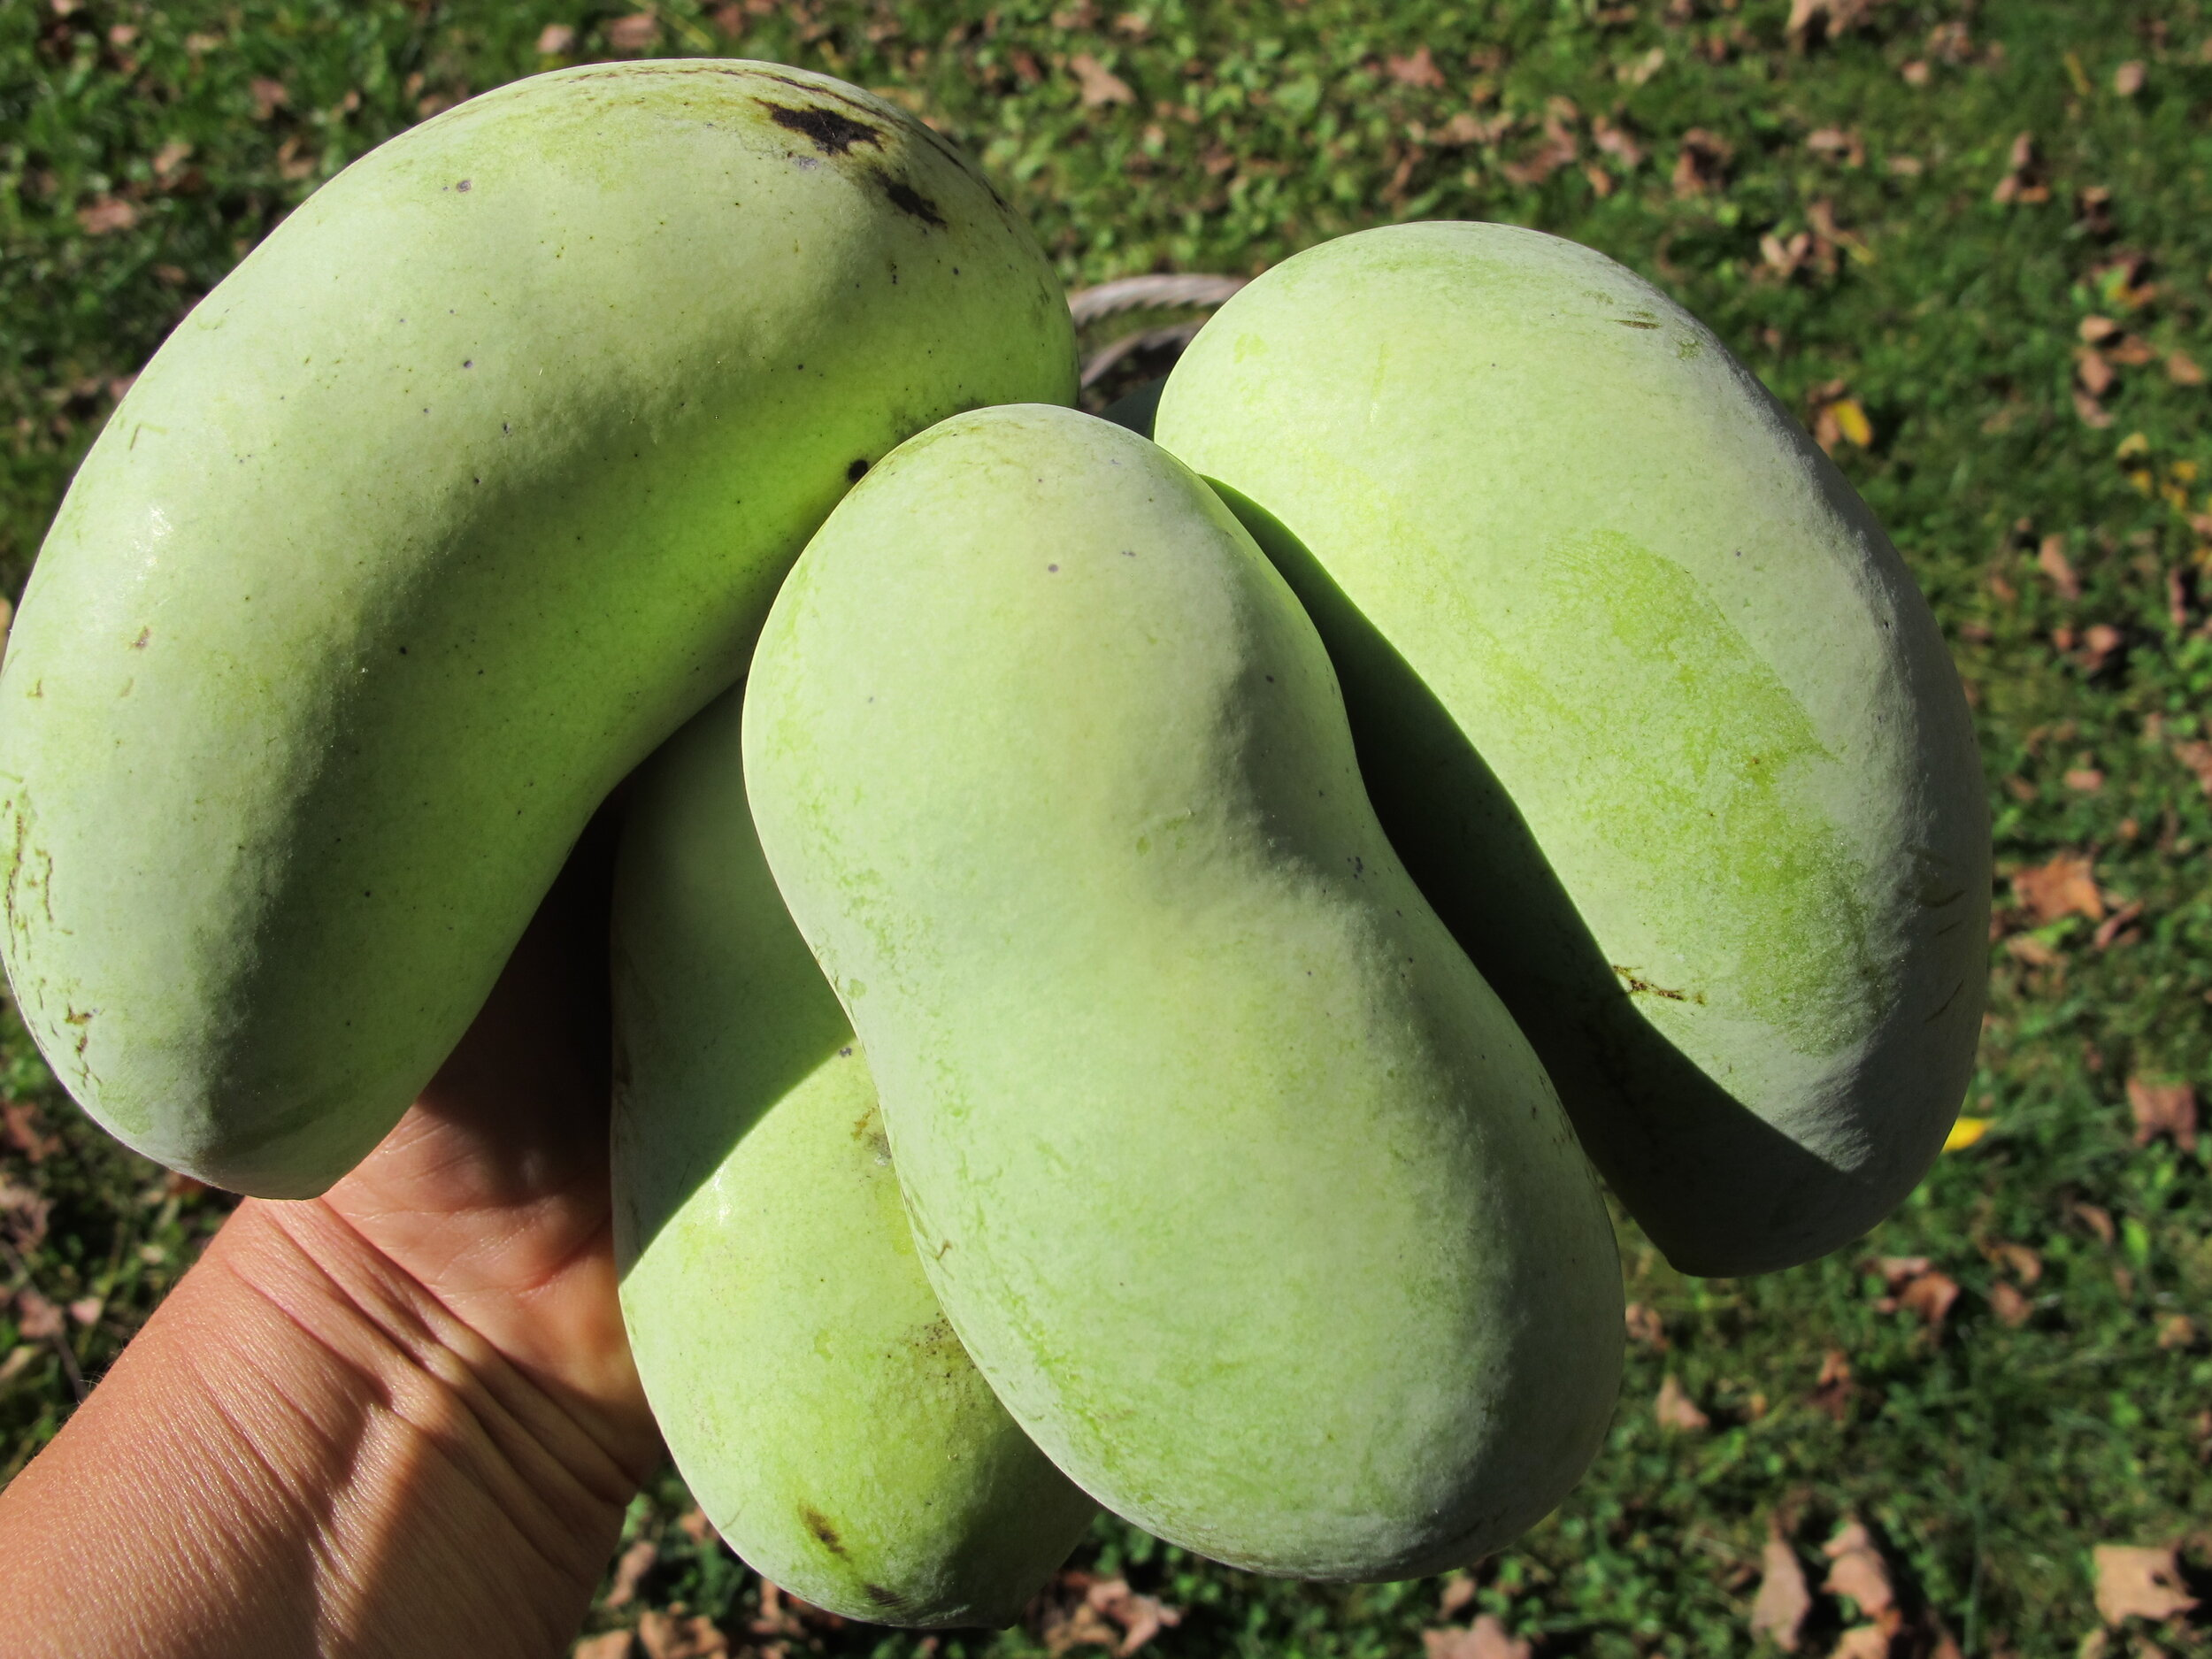 Look at the size of these pawpaws! The fifth one is hidden from view by its other siblings.